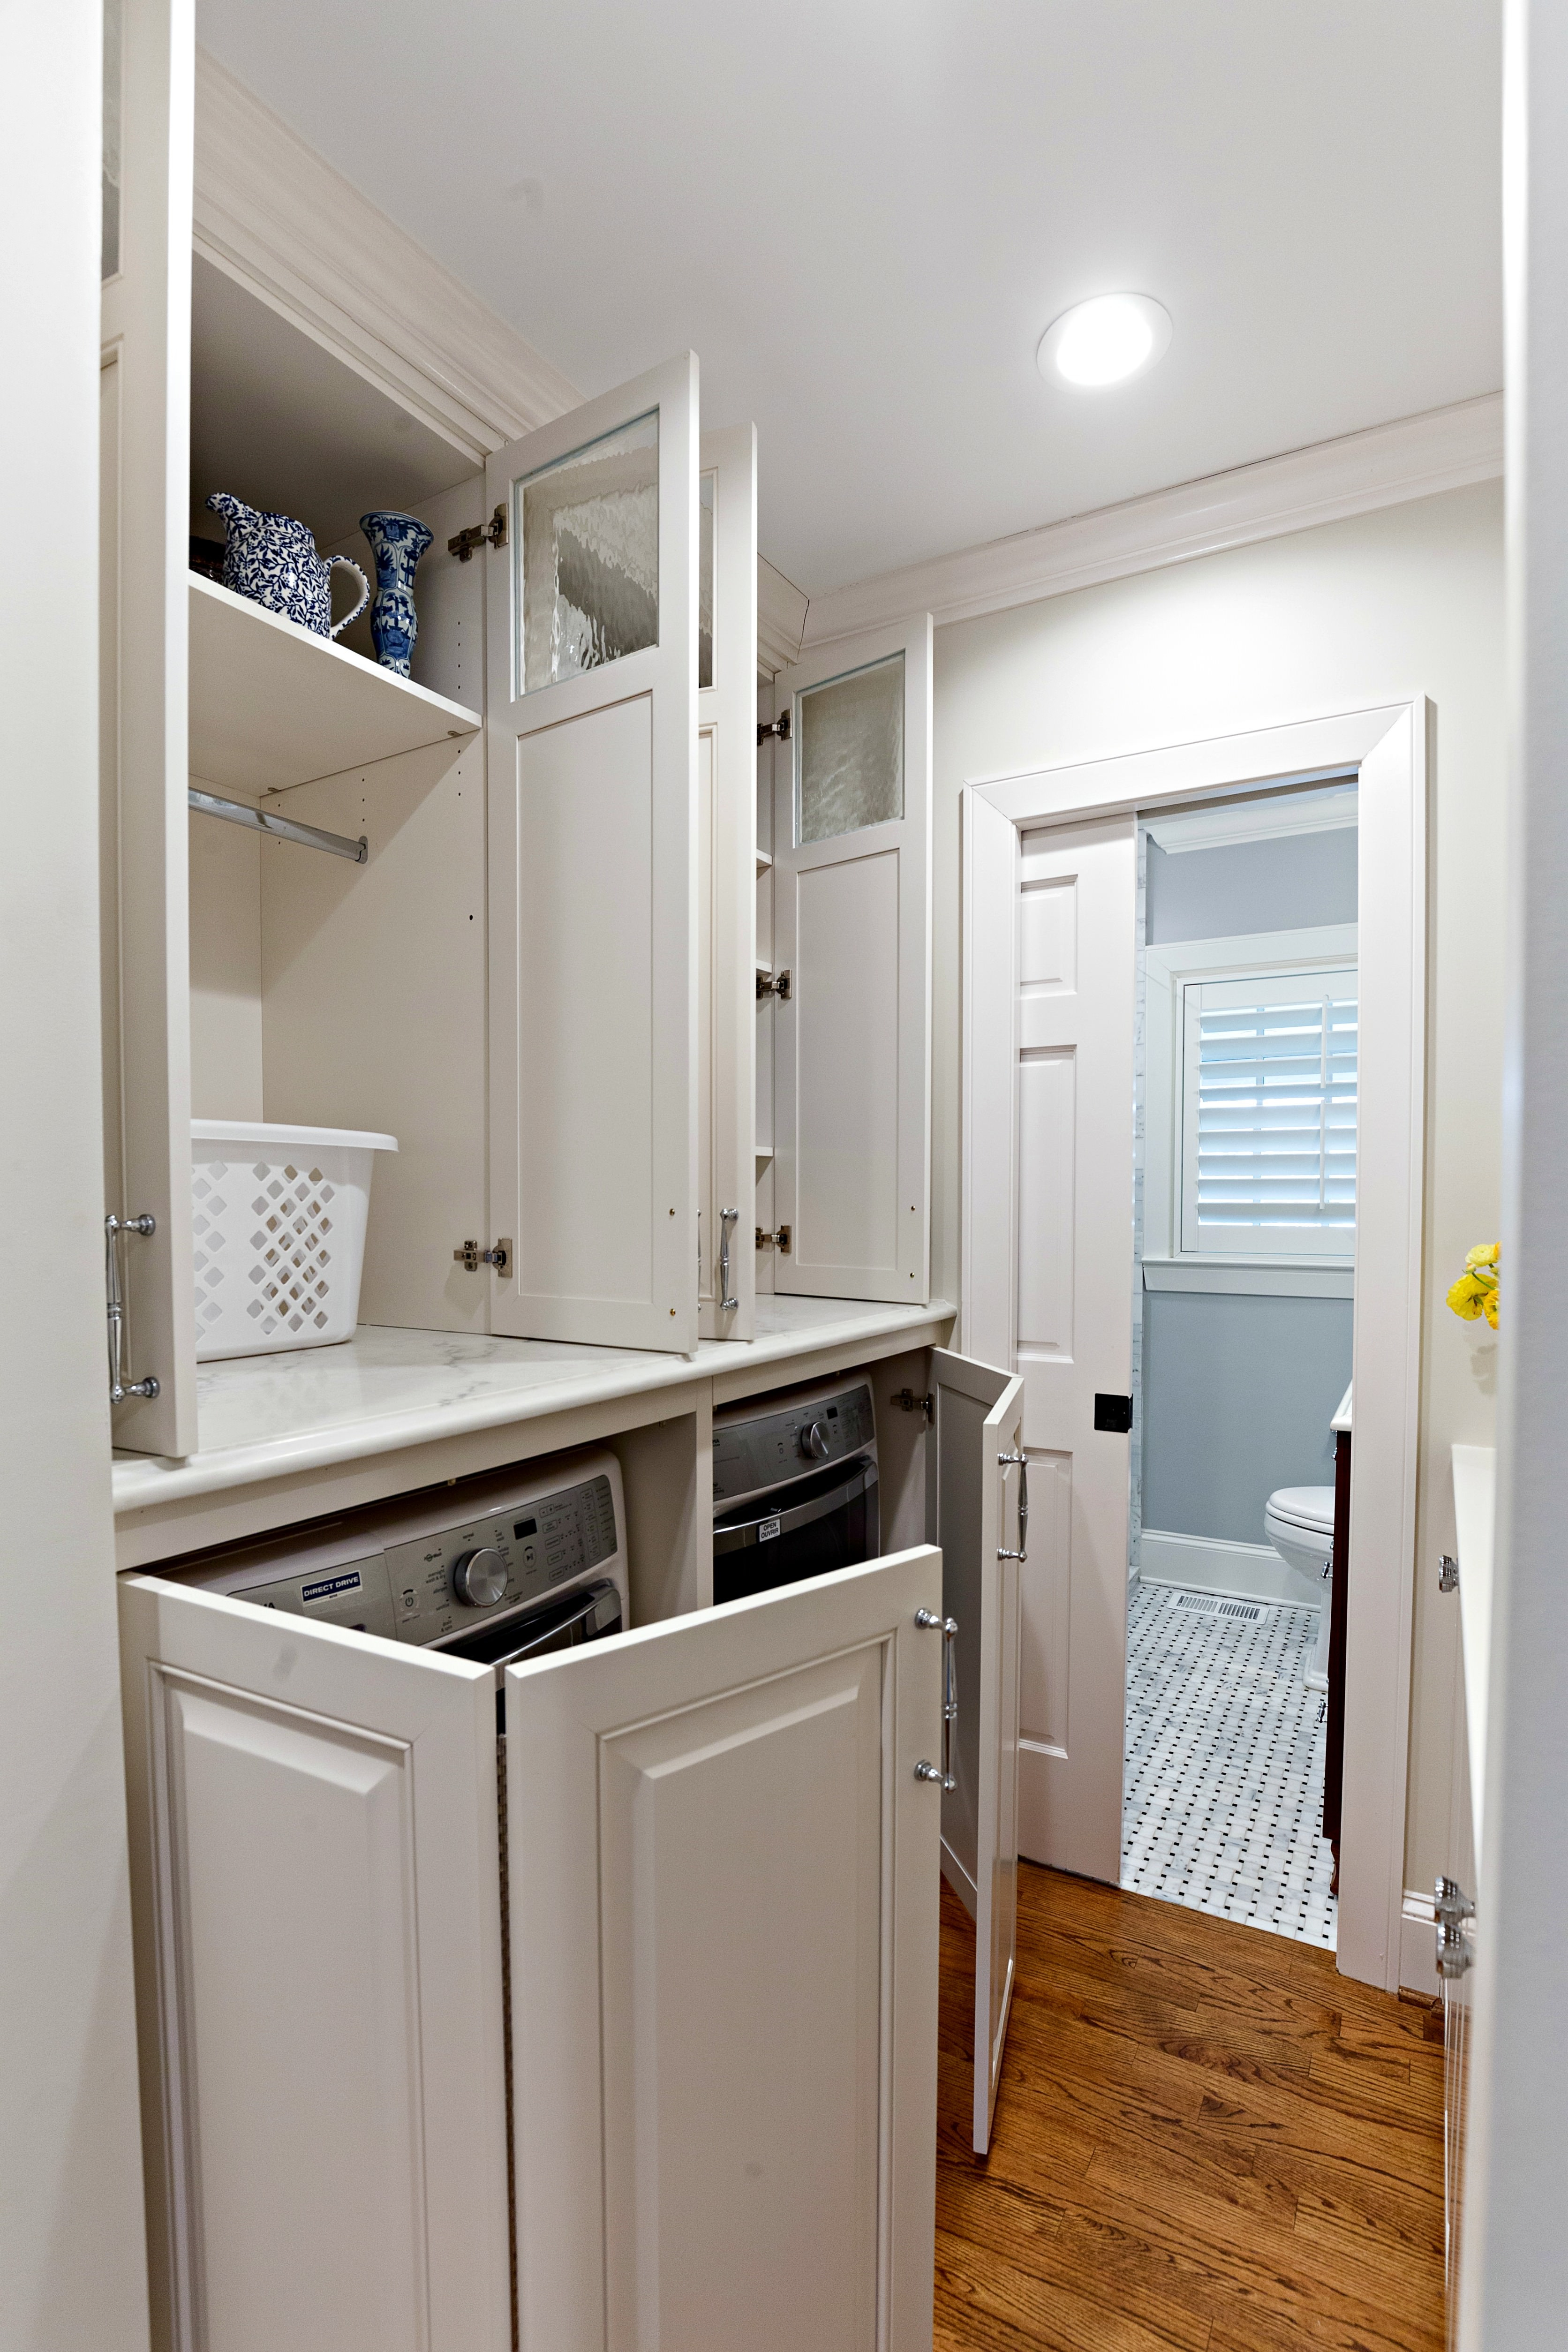 Bifold Cabinet Doors Awesome Walker Woodworking Custom Cabinets White Laundry Room